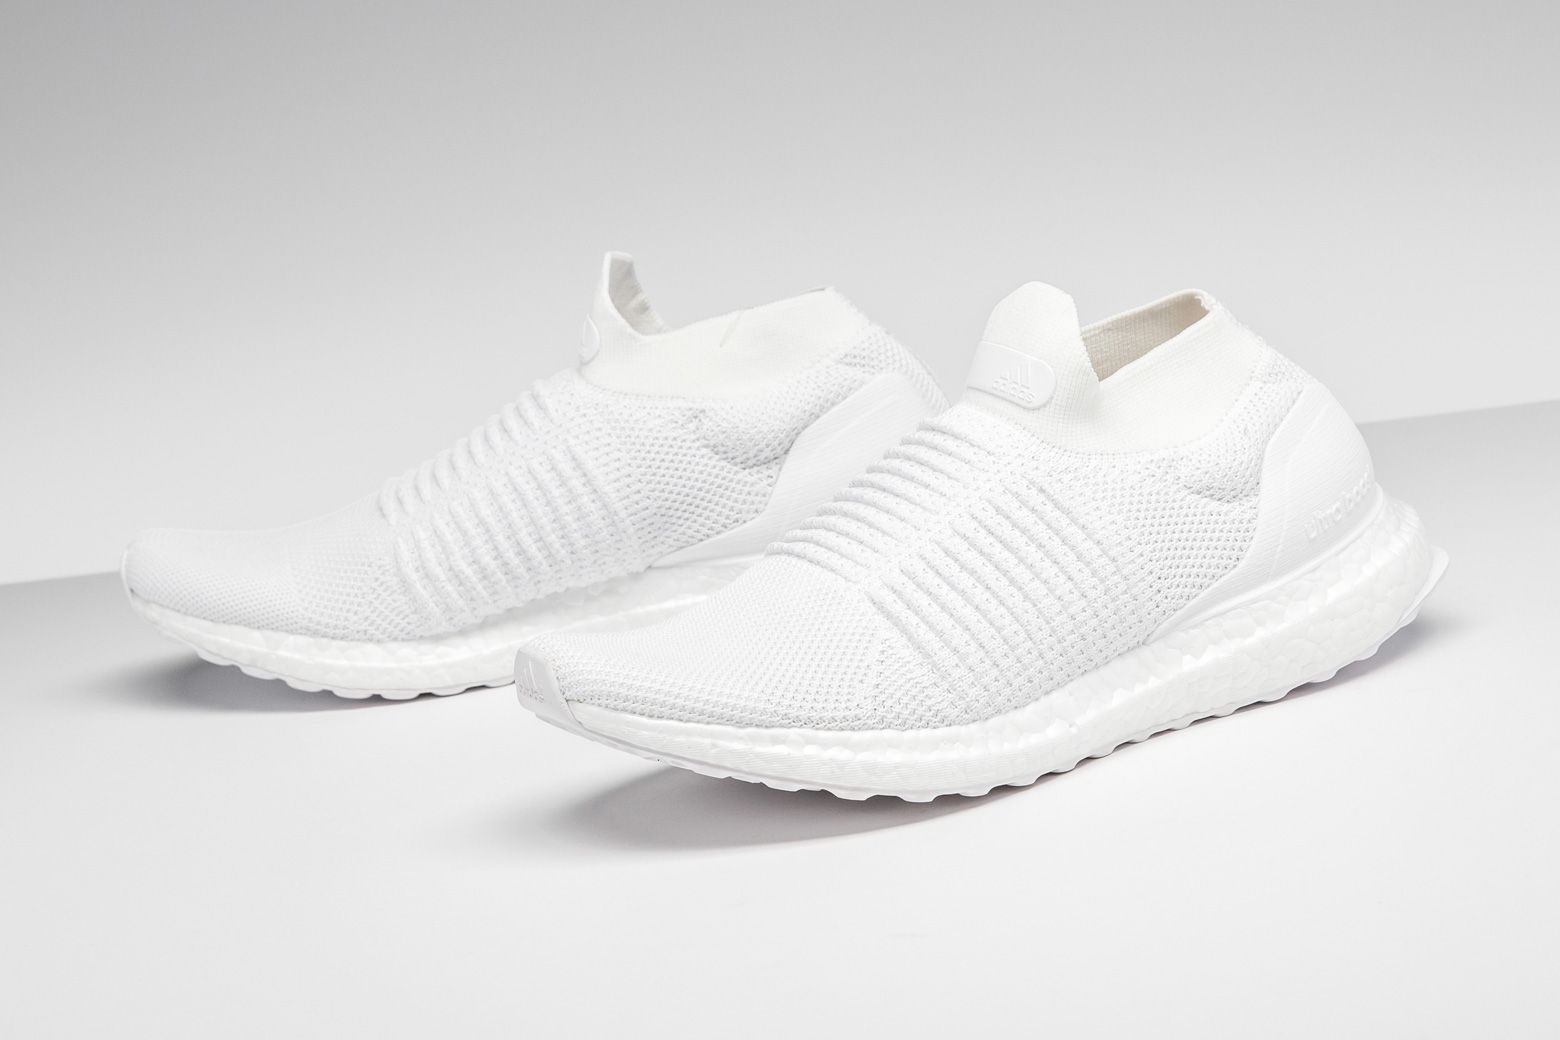 separation shoes 529dc 68813 UltraBOOST Laceless in 2019 | adidas Ultraboost | Adidas ...